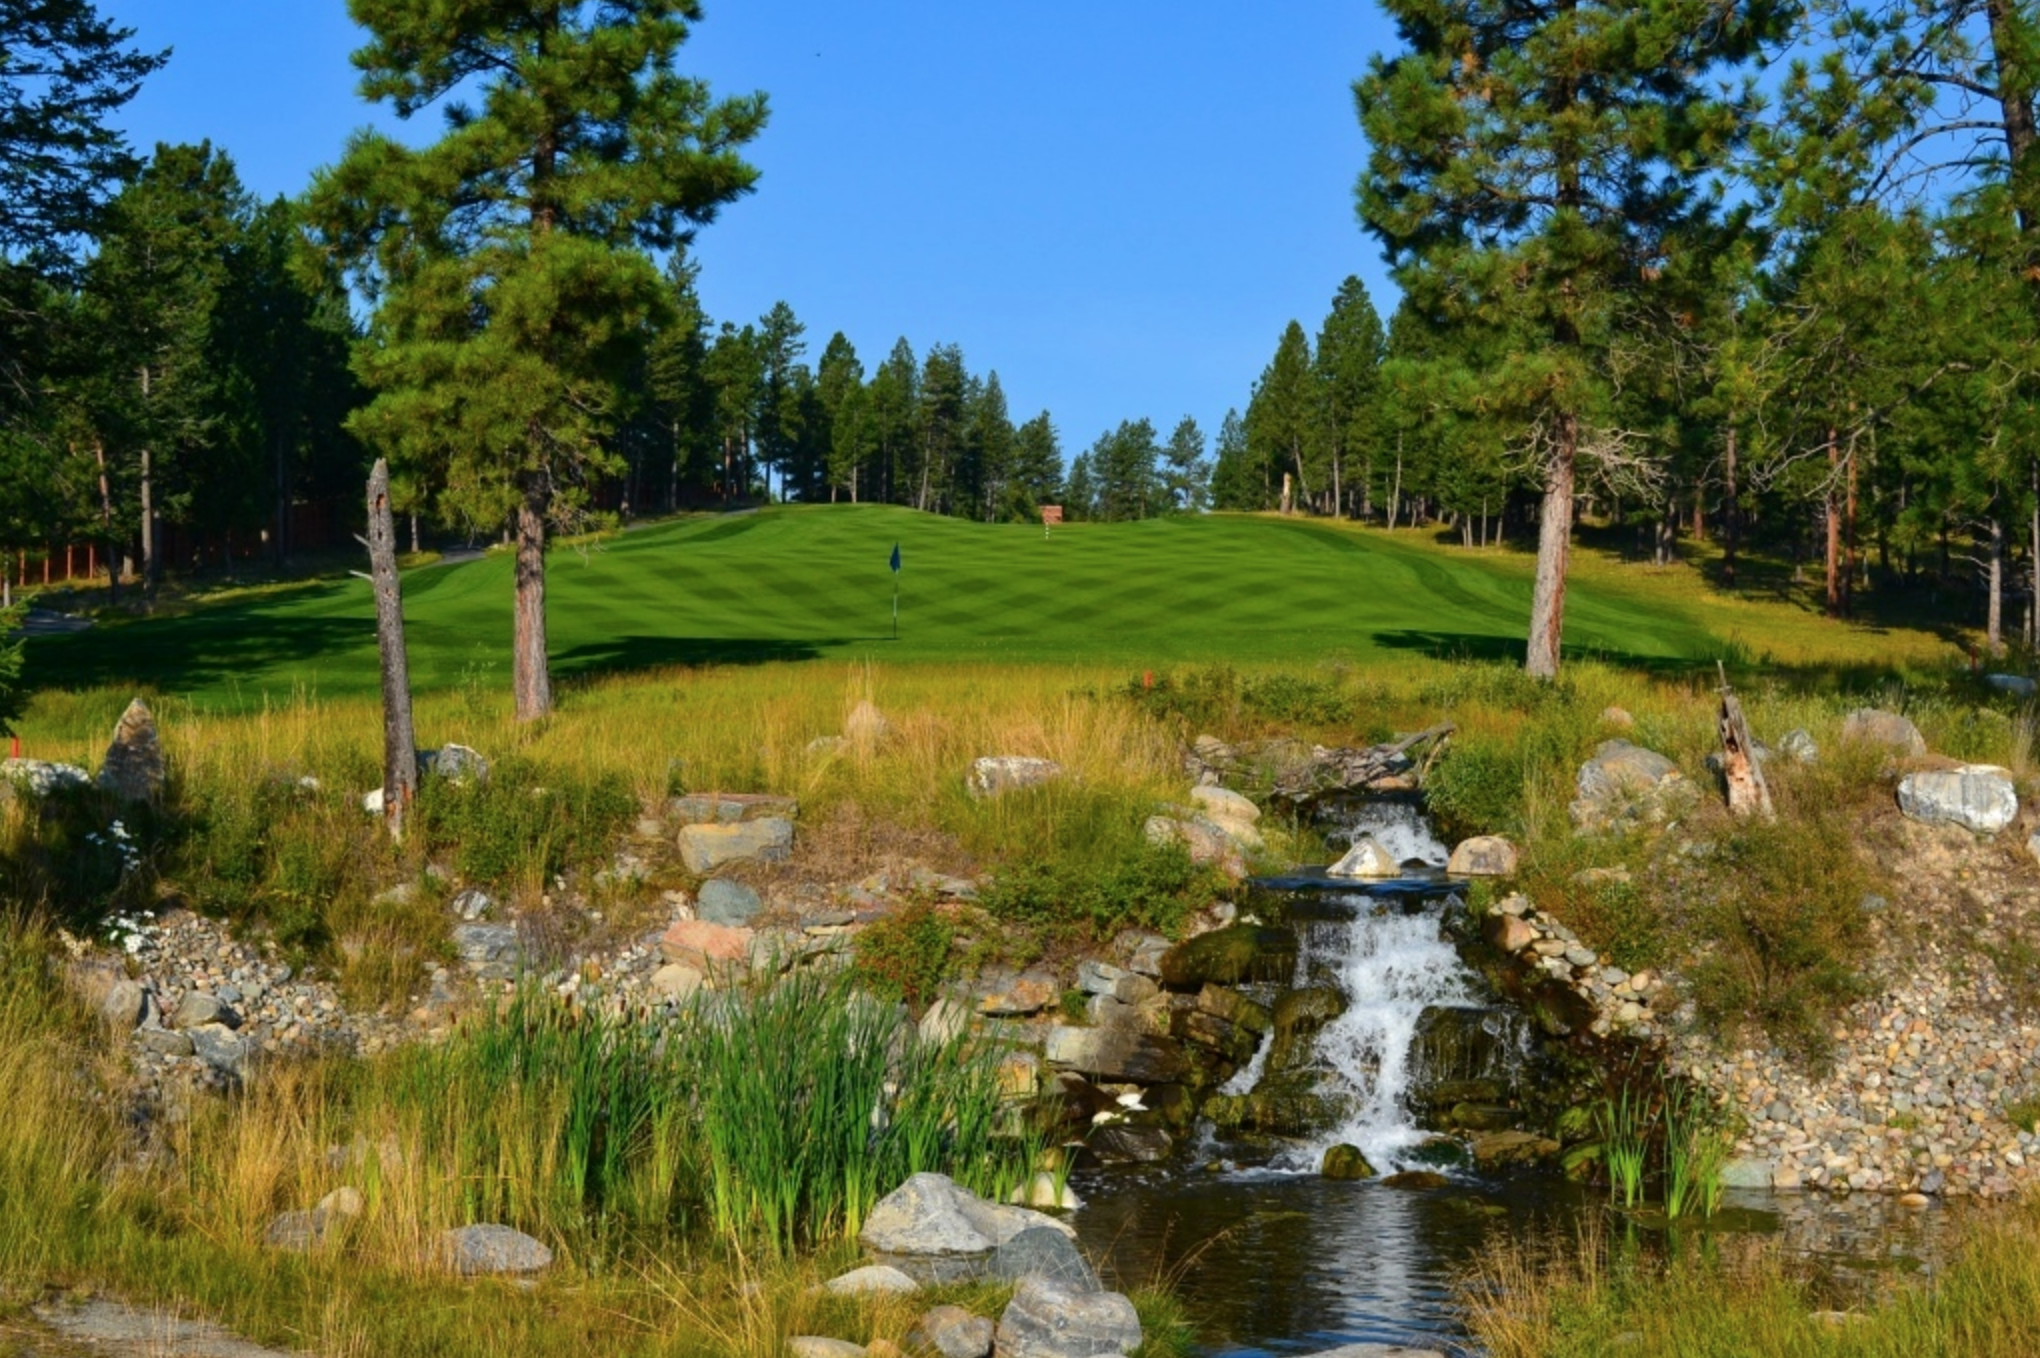 Wildstone Golf Course 2017-04-03 12.59.10.png